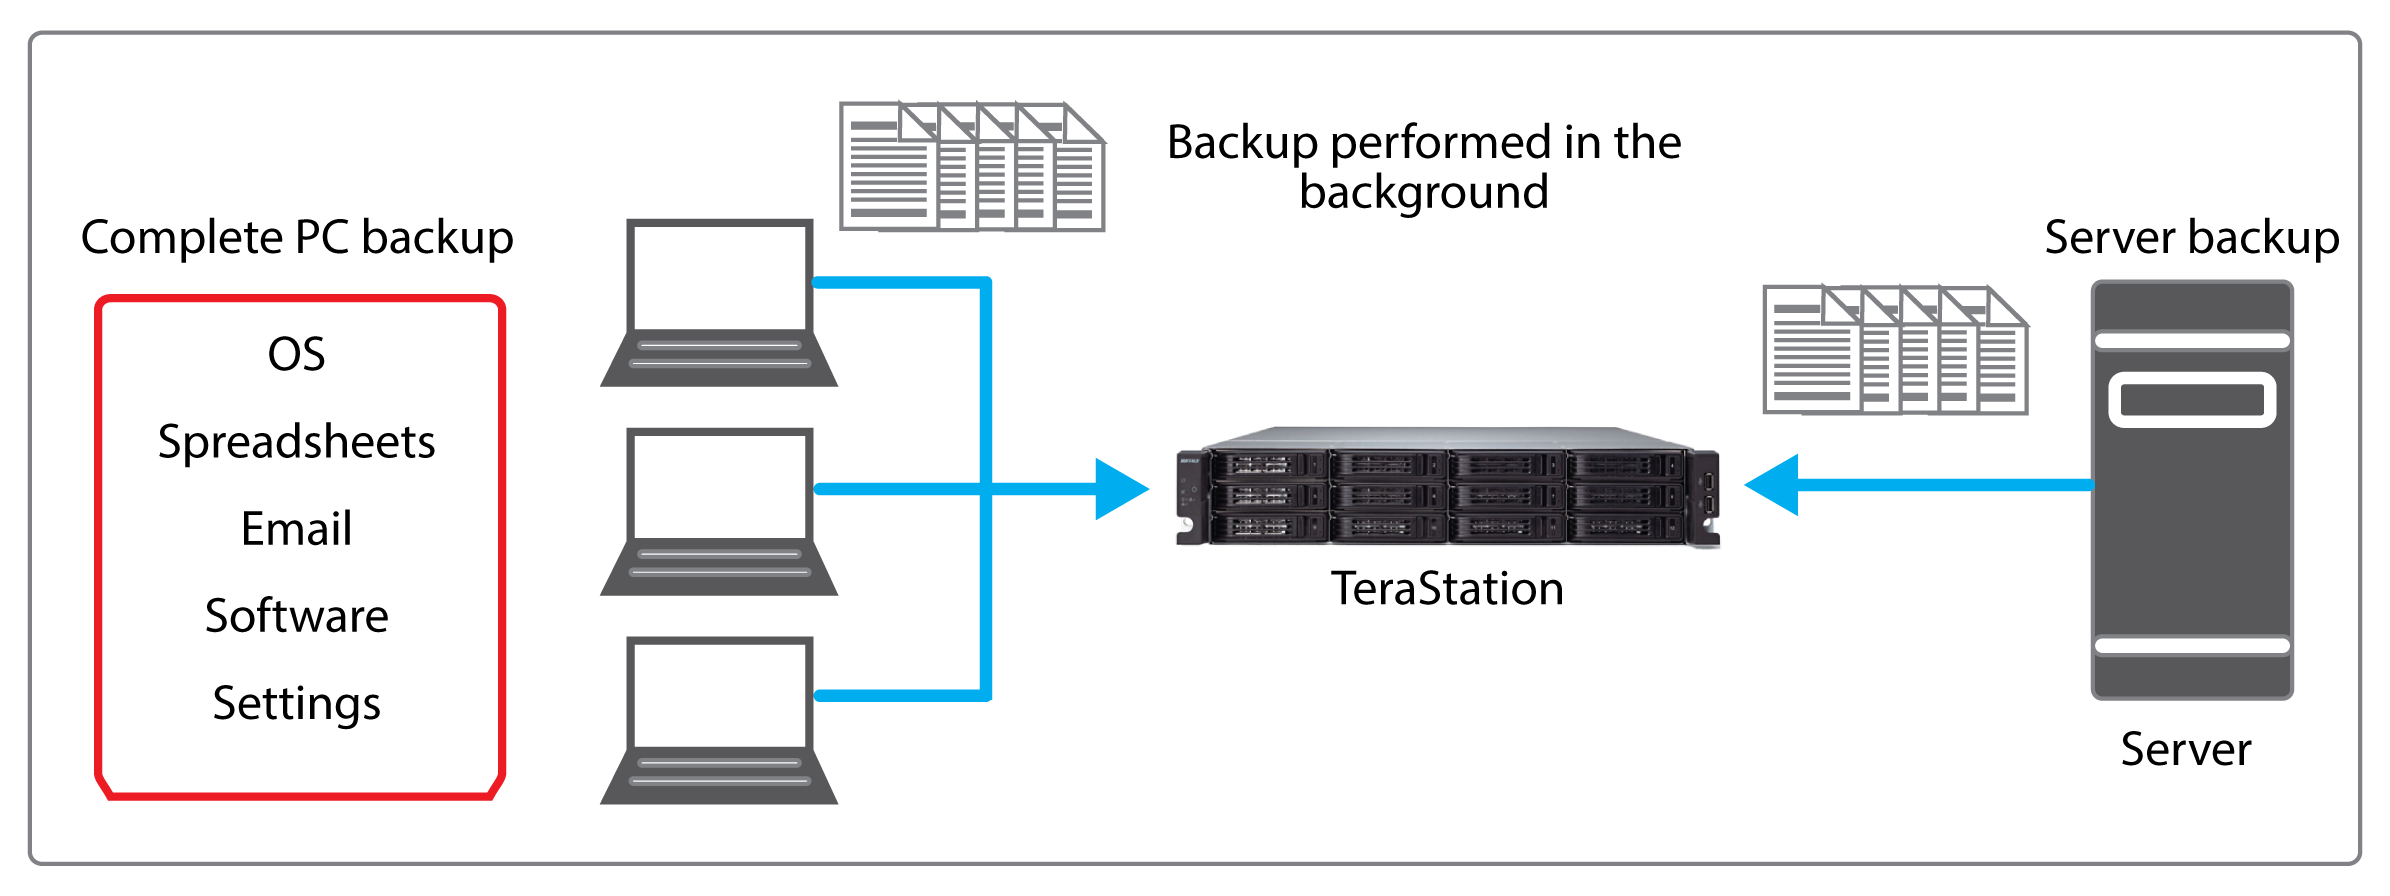 terastation 7000r client server backup